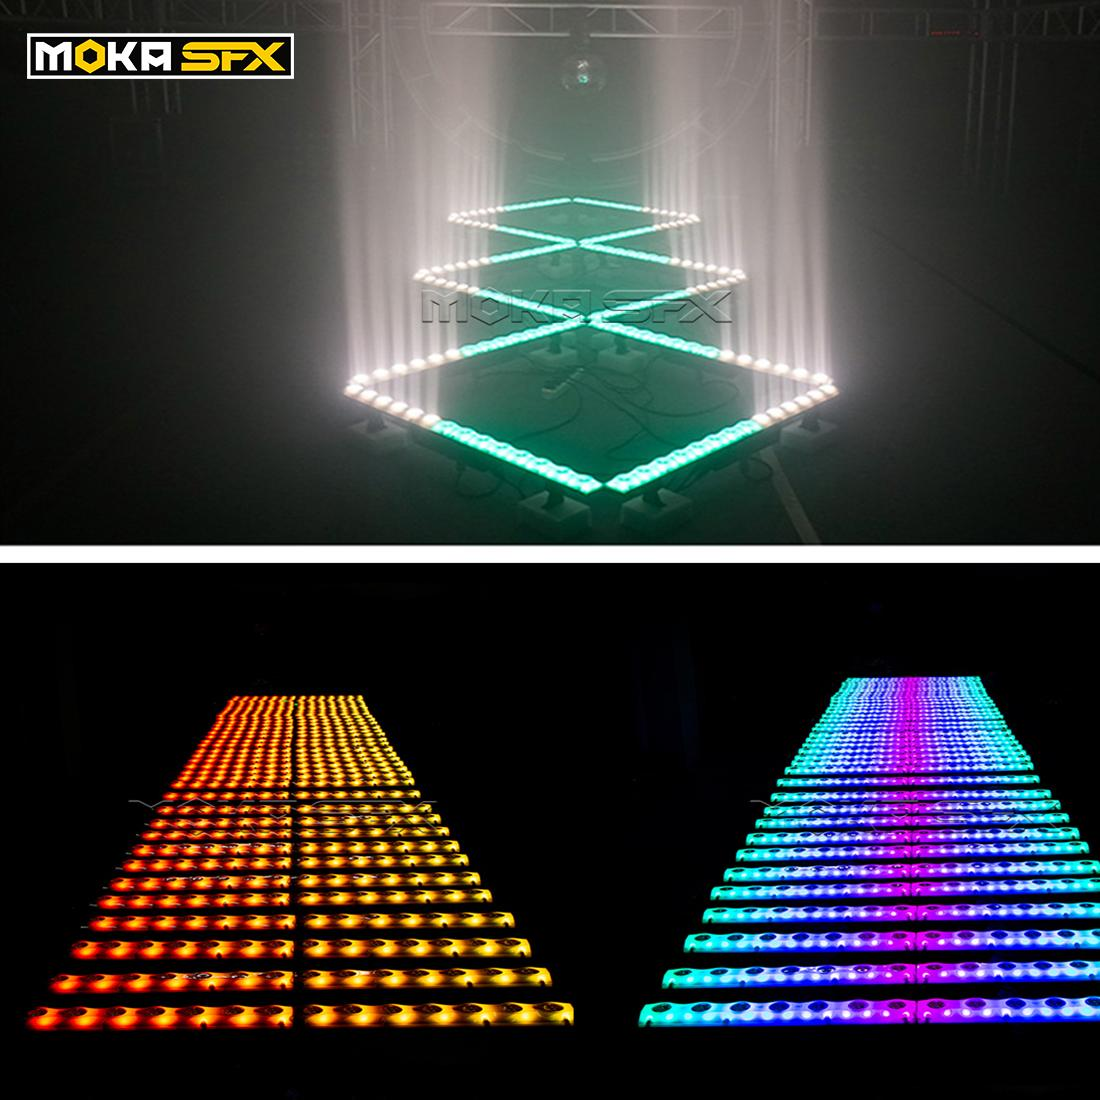 Spain Stock LED Wall Washer Stage Lighting 14x3W DMX Light Bar Pixel Control RGB 3in1 Color Mixing for Events Show Party